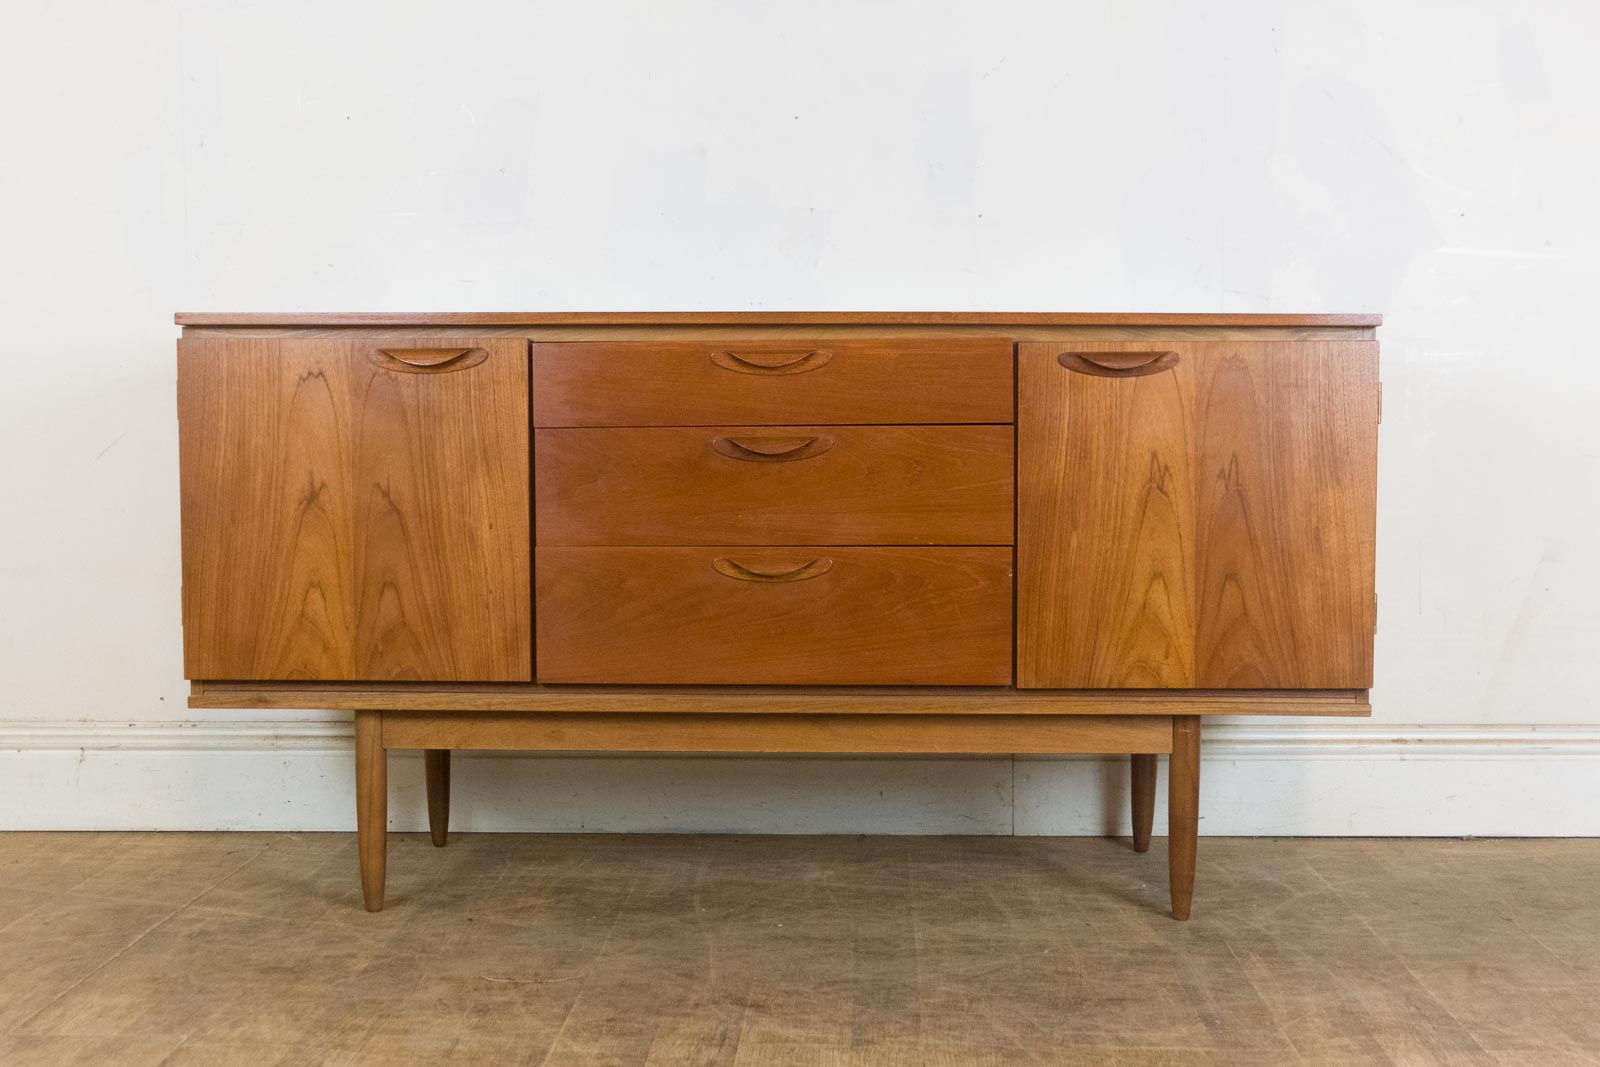 vintage retro small teak mid century sideboard by austin. Black Bedroom Furniture Sets. Home Design Ideas